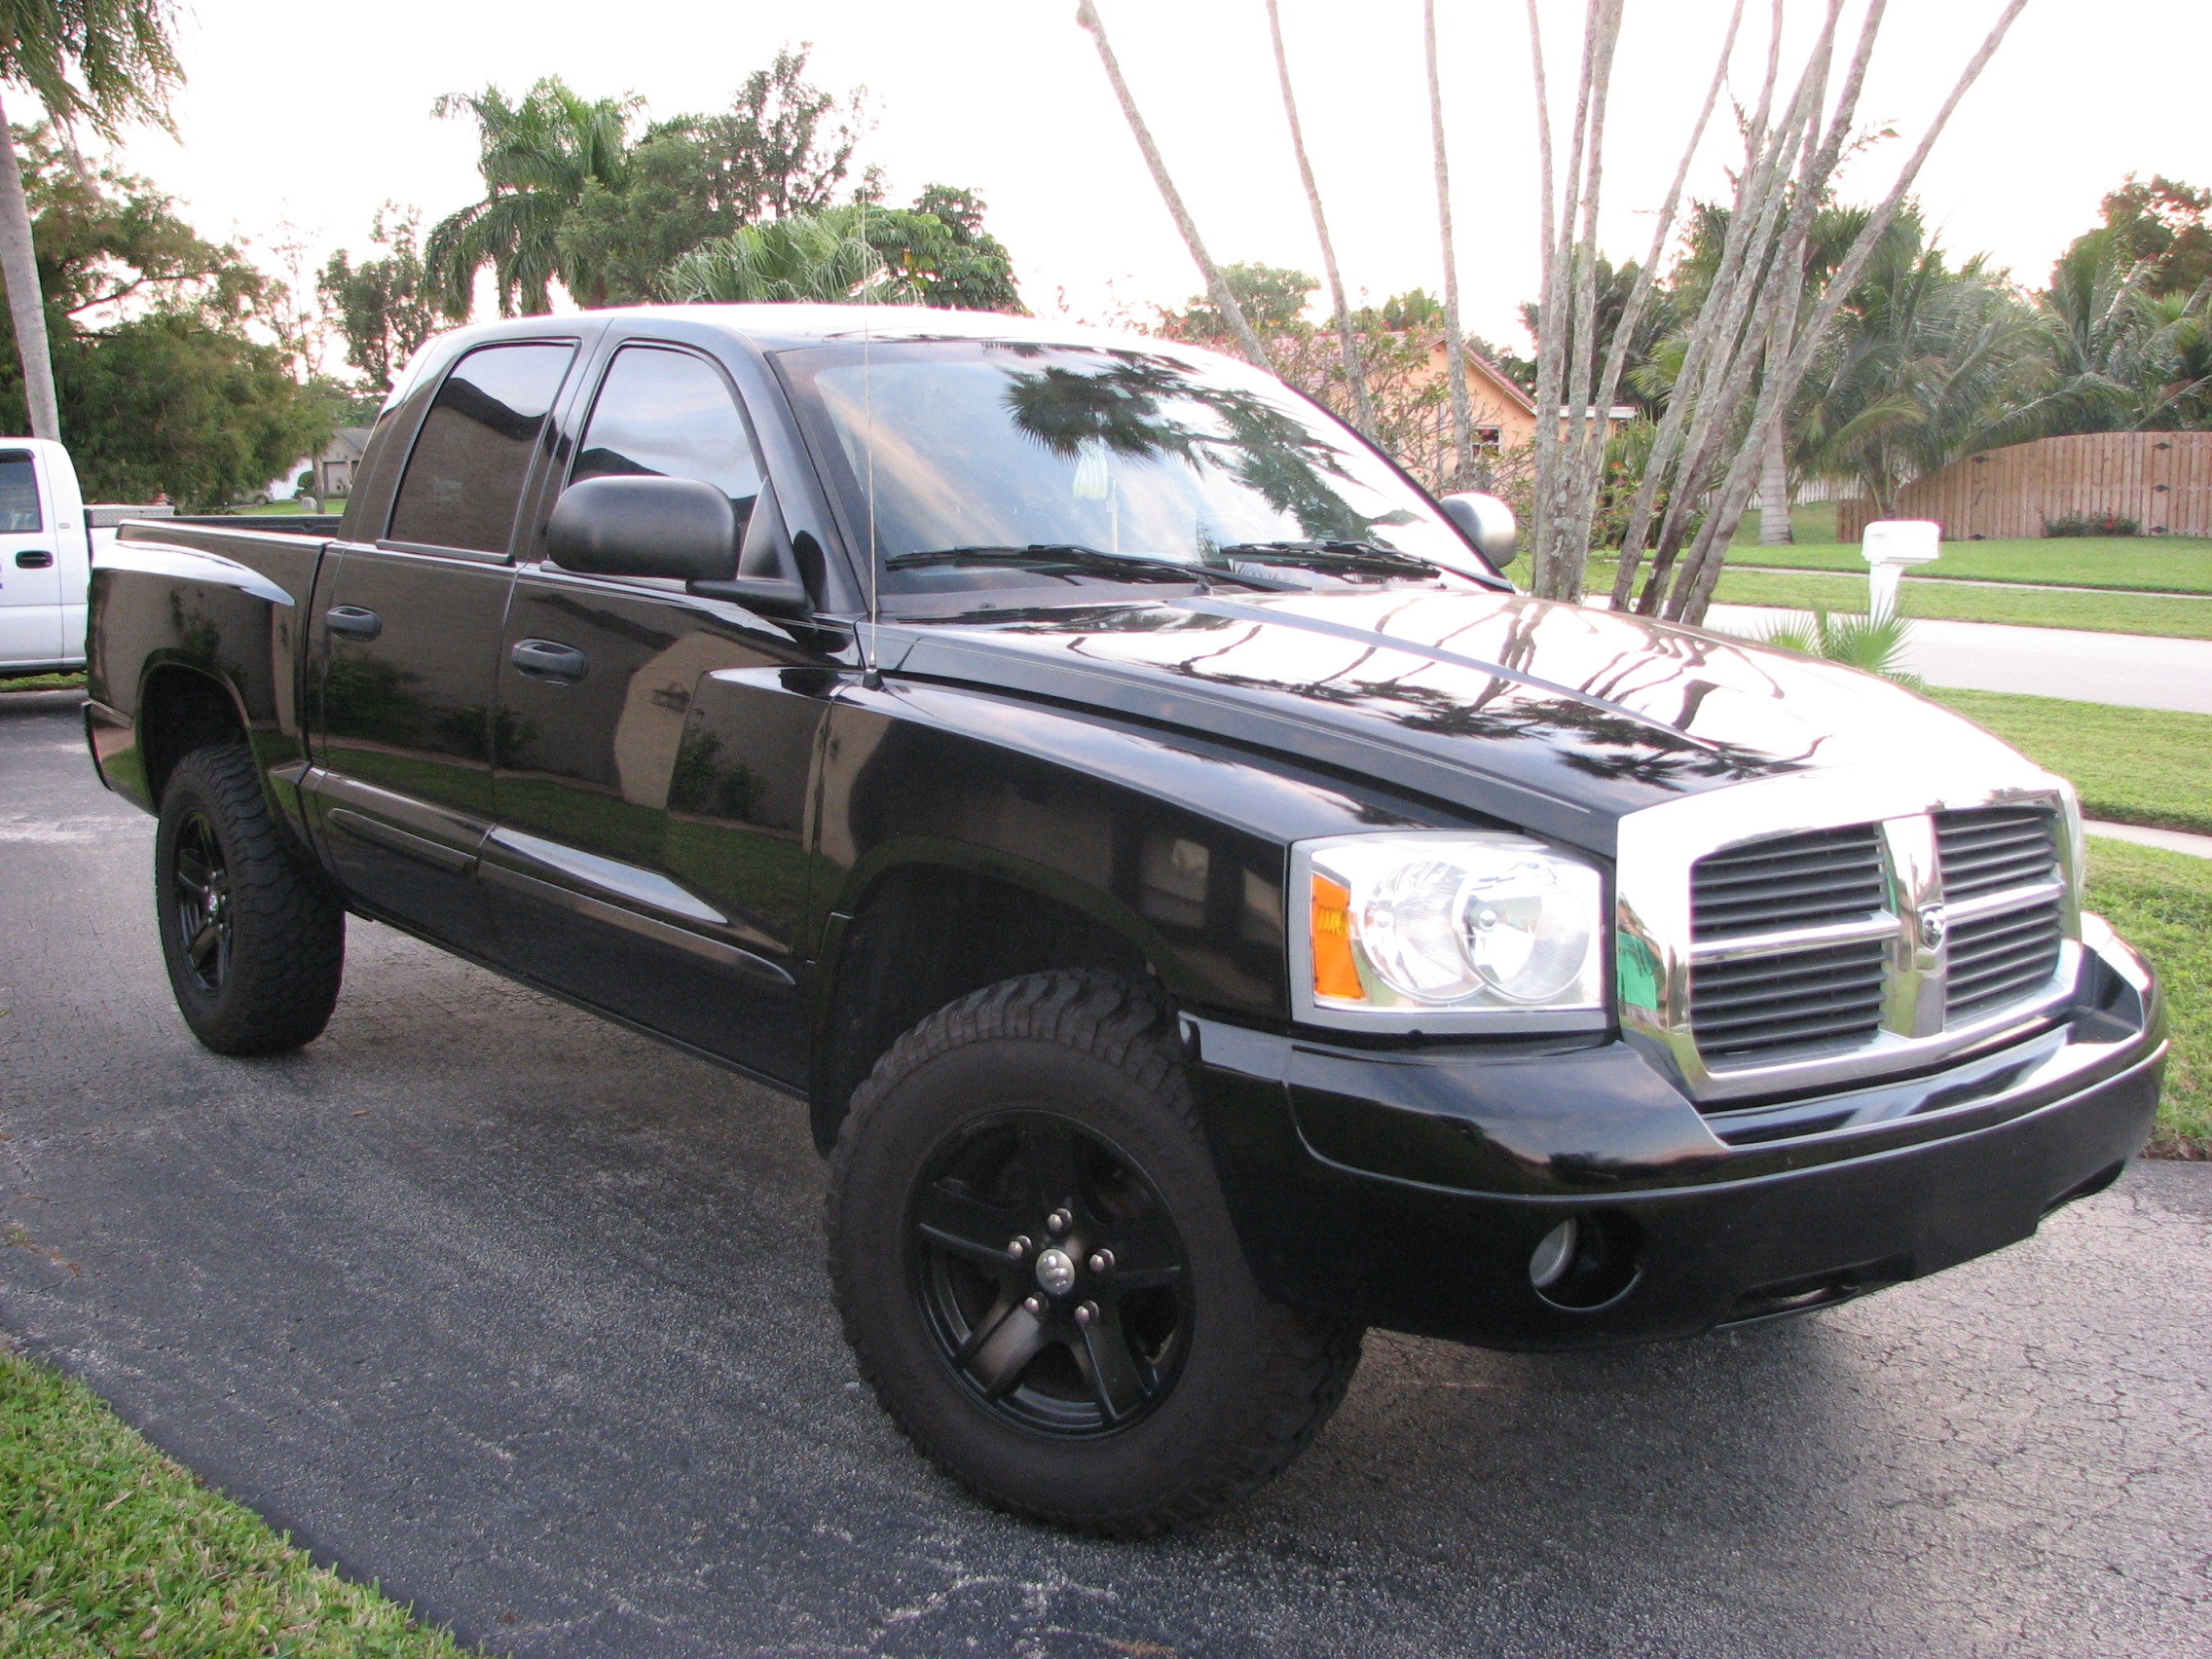 Airarm Du moreover Original in addition  besides Original together with D Inch Rancho Lift Installed Pics Rancholift. on dodge dakota lift kit